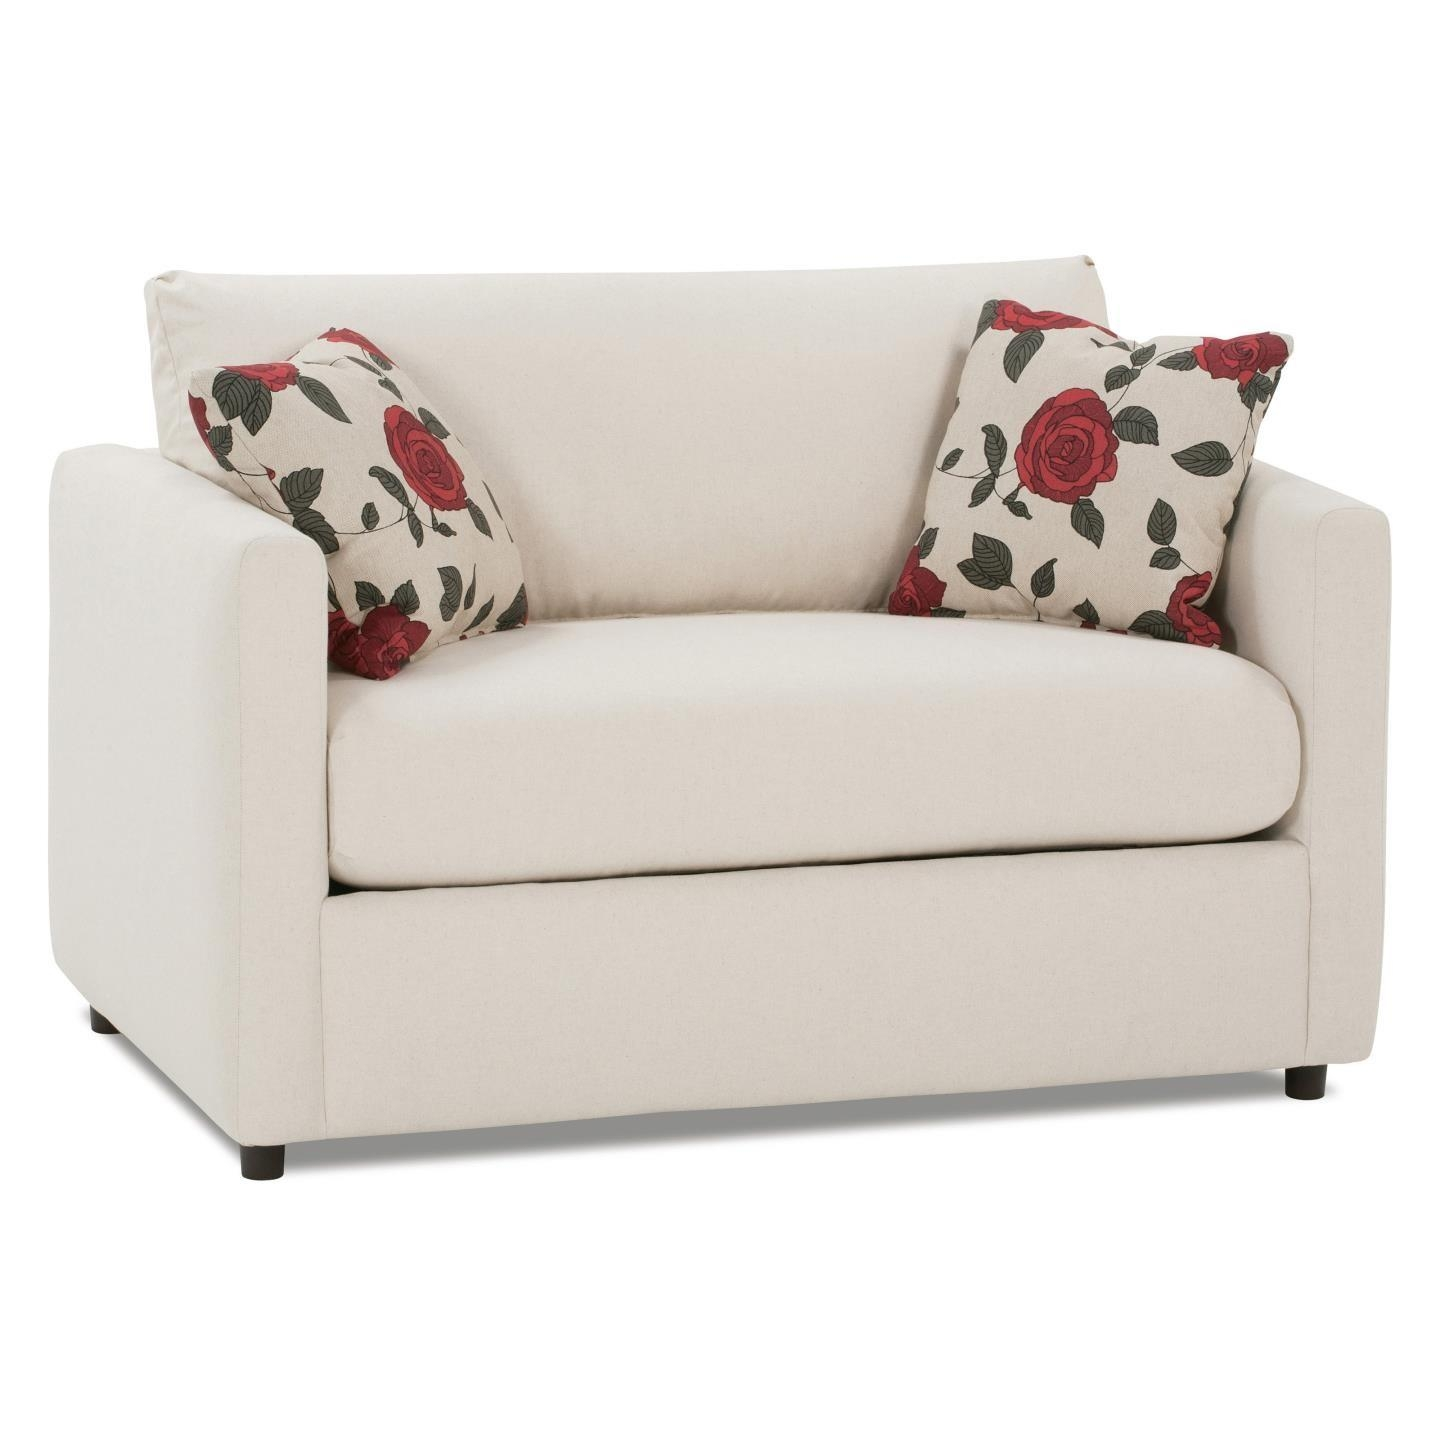 Furniture: Pouf Ottoman Ikea To Match Your Favorite Sofa Or Within Footstool Pouffe Sofa Folding Bed (View 3 of 20)